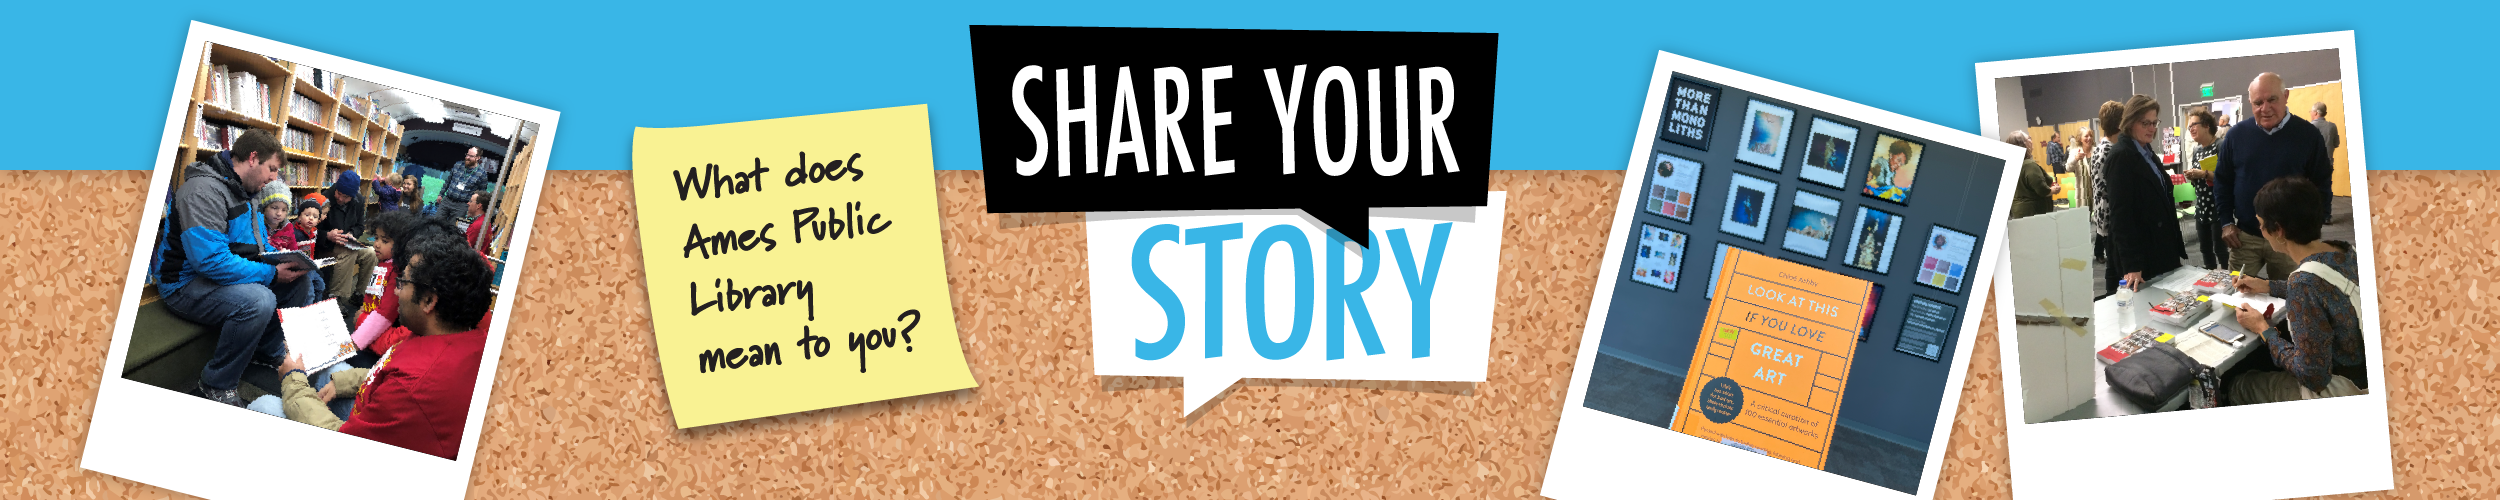 Share Your Story. What does Ames Public Library mean to you?